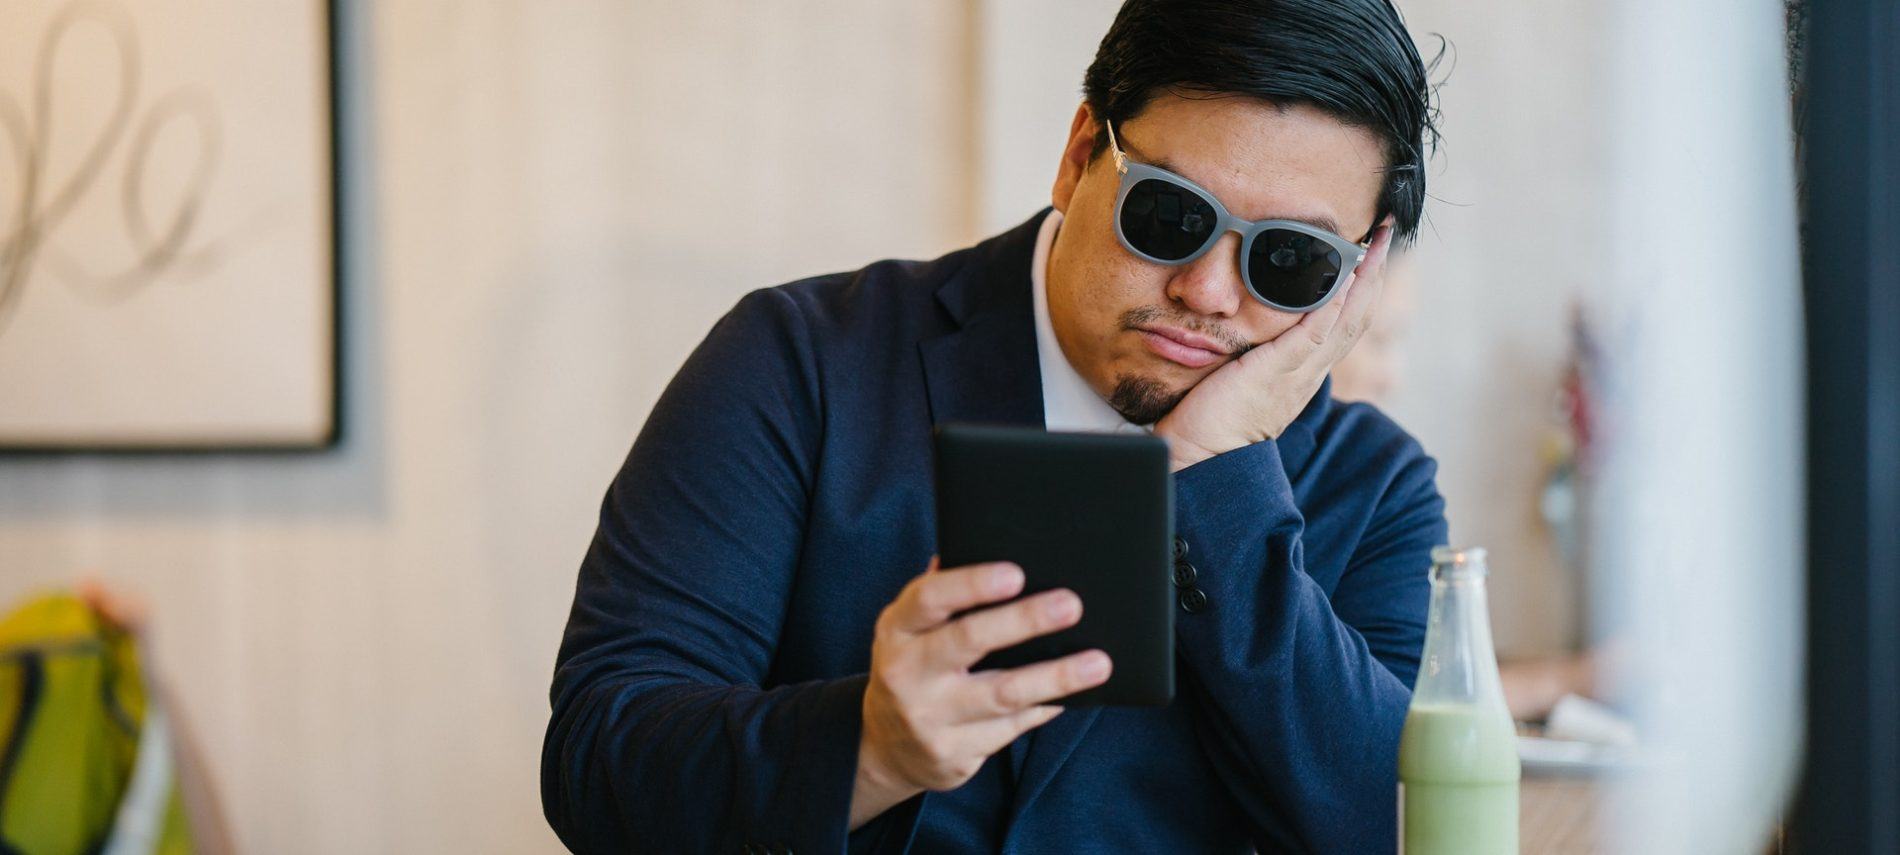 man sitting in a coffee shop looking at his phone looking bored